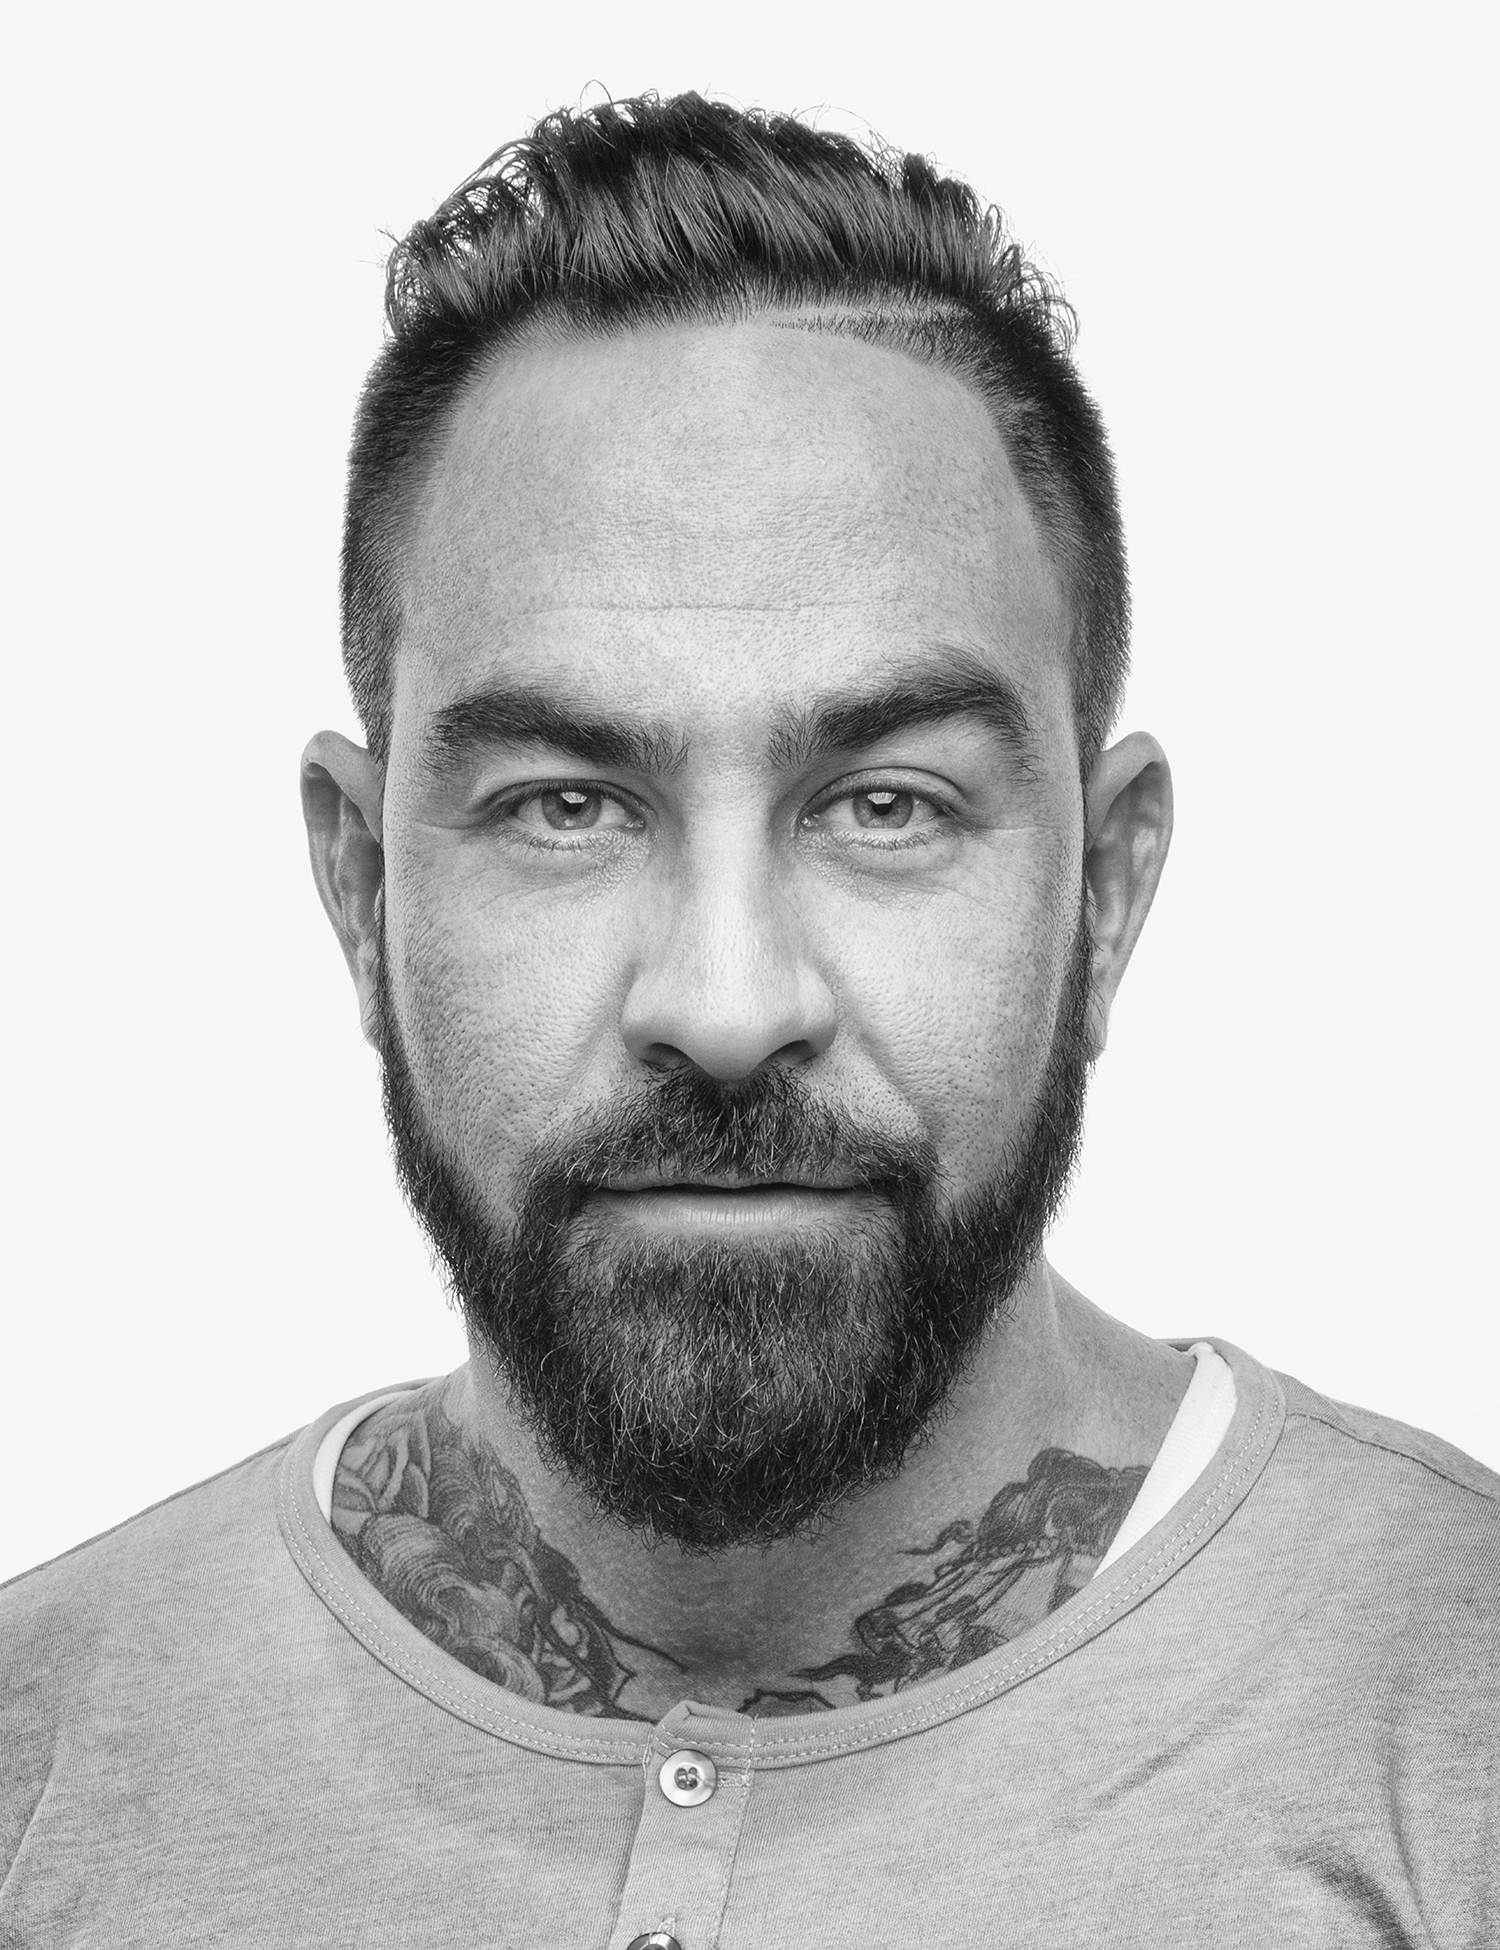 Chris Nunez, Tattoo Artist, Star of Television's Ink Master and Miami Ink.